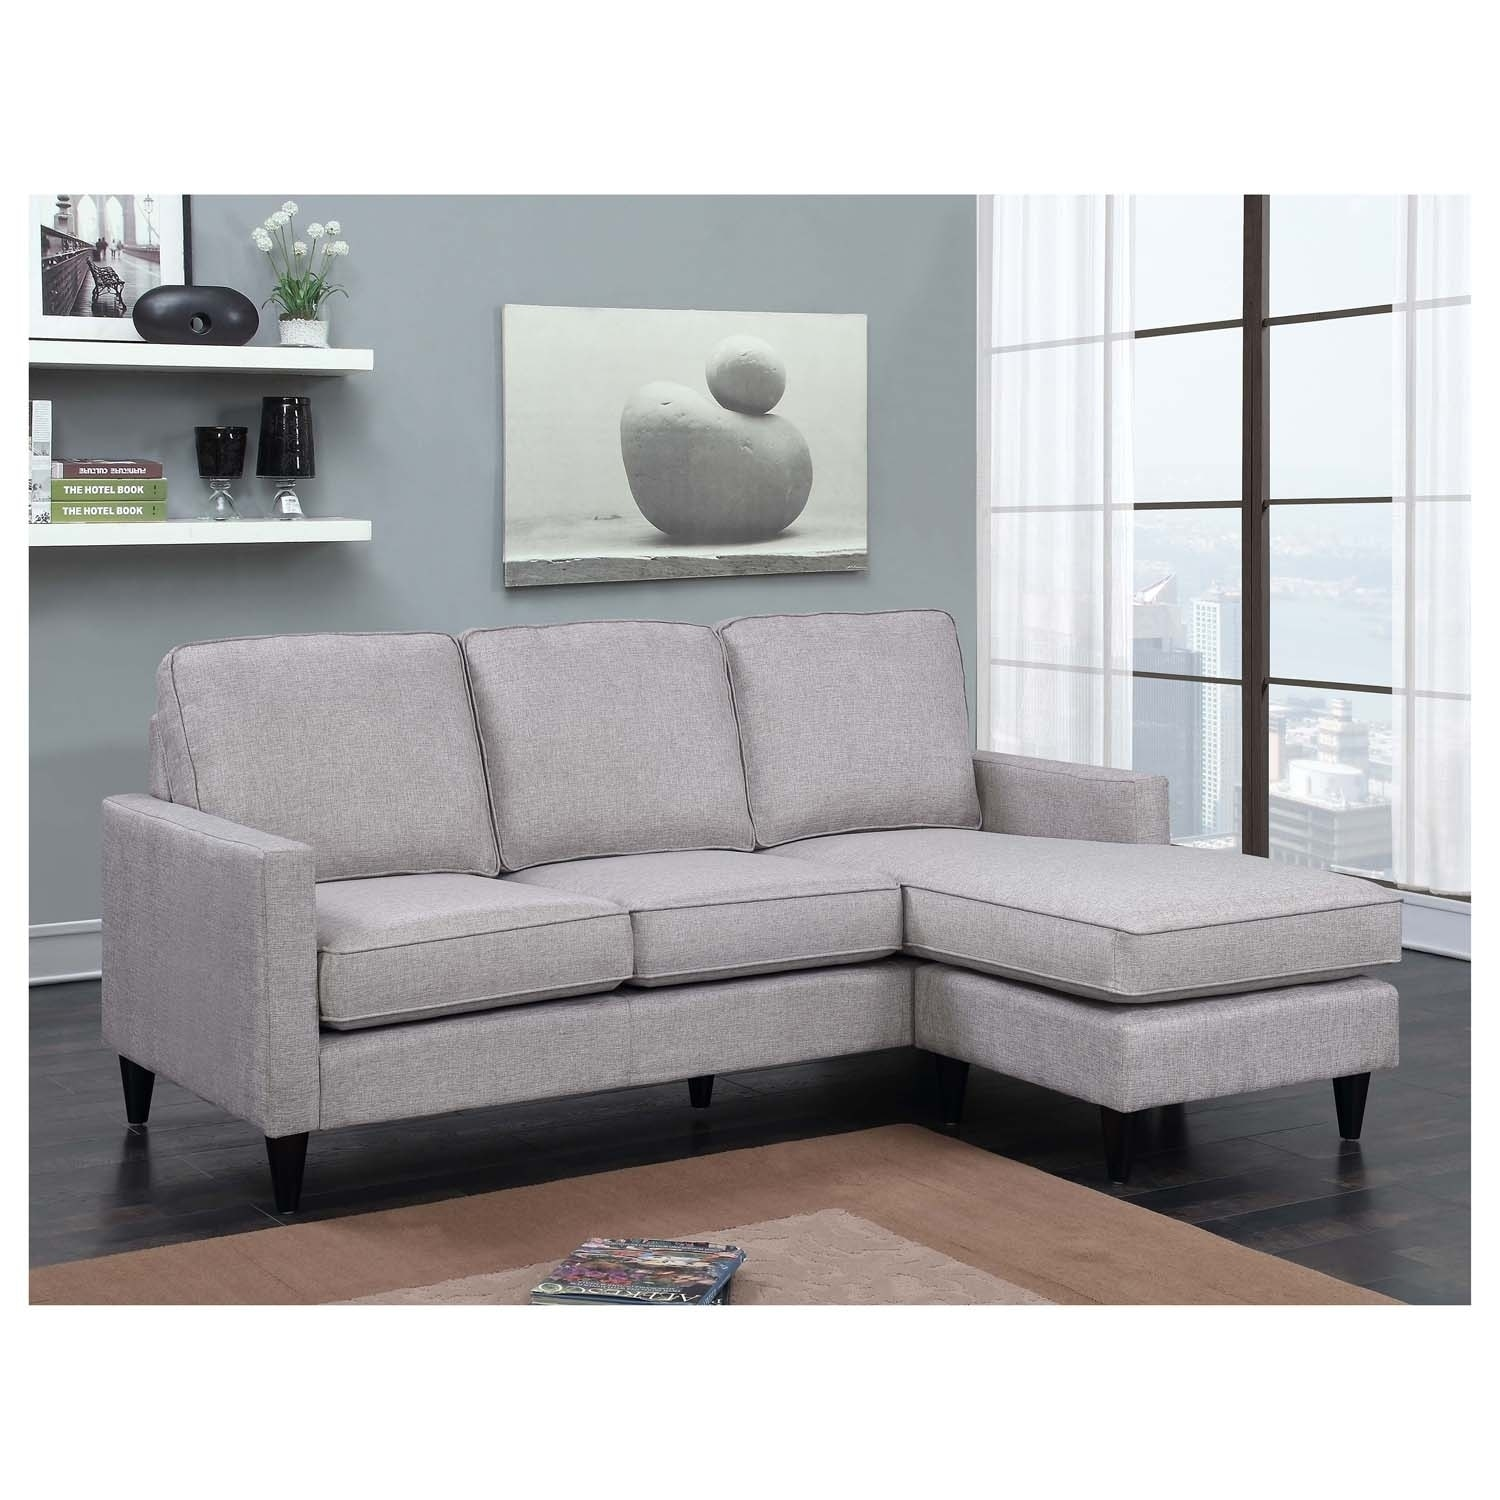 with sectional long sale l oversized large surprise furniture big contemporary sofa couches shaped for chaise a couch of size room and the full chair grey recliner living leather tufted sofas